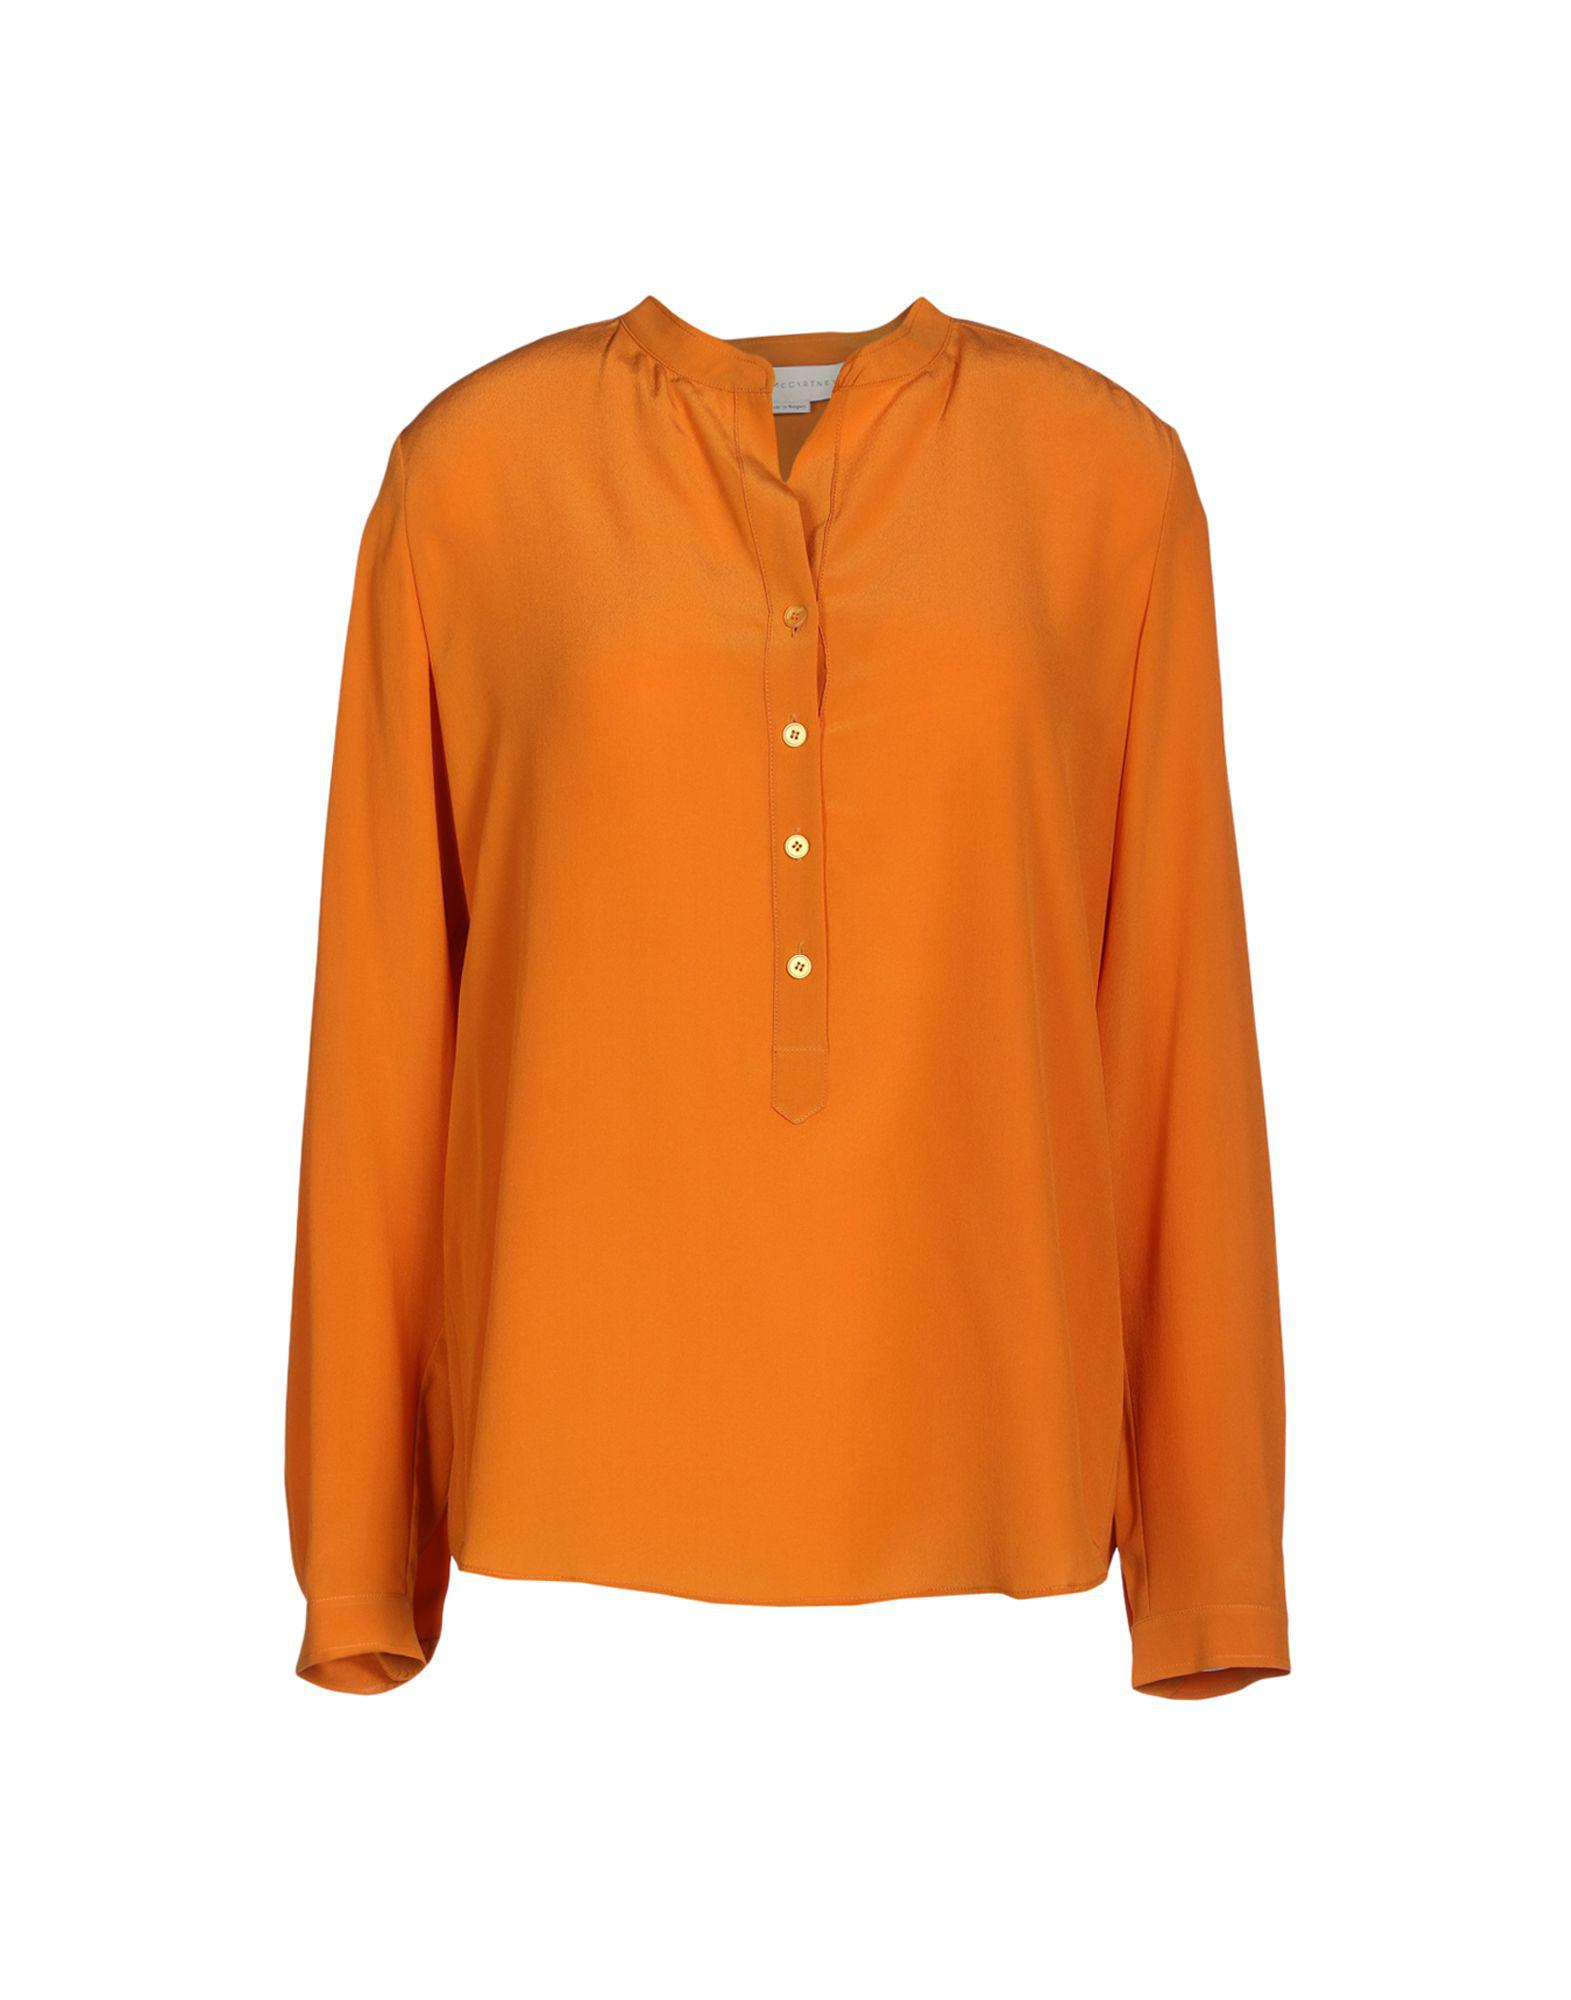 2b402d5671eda Lyst - Stella Mccartney Blouse in Orange